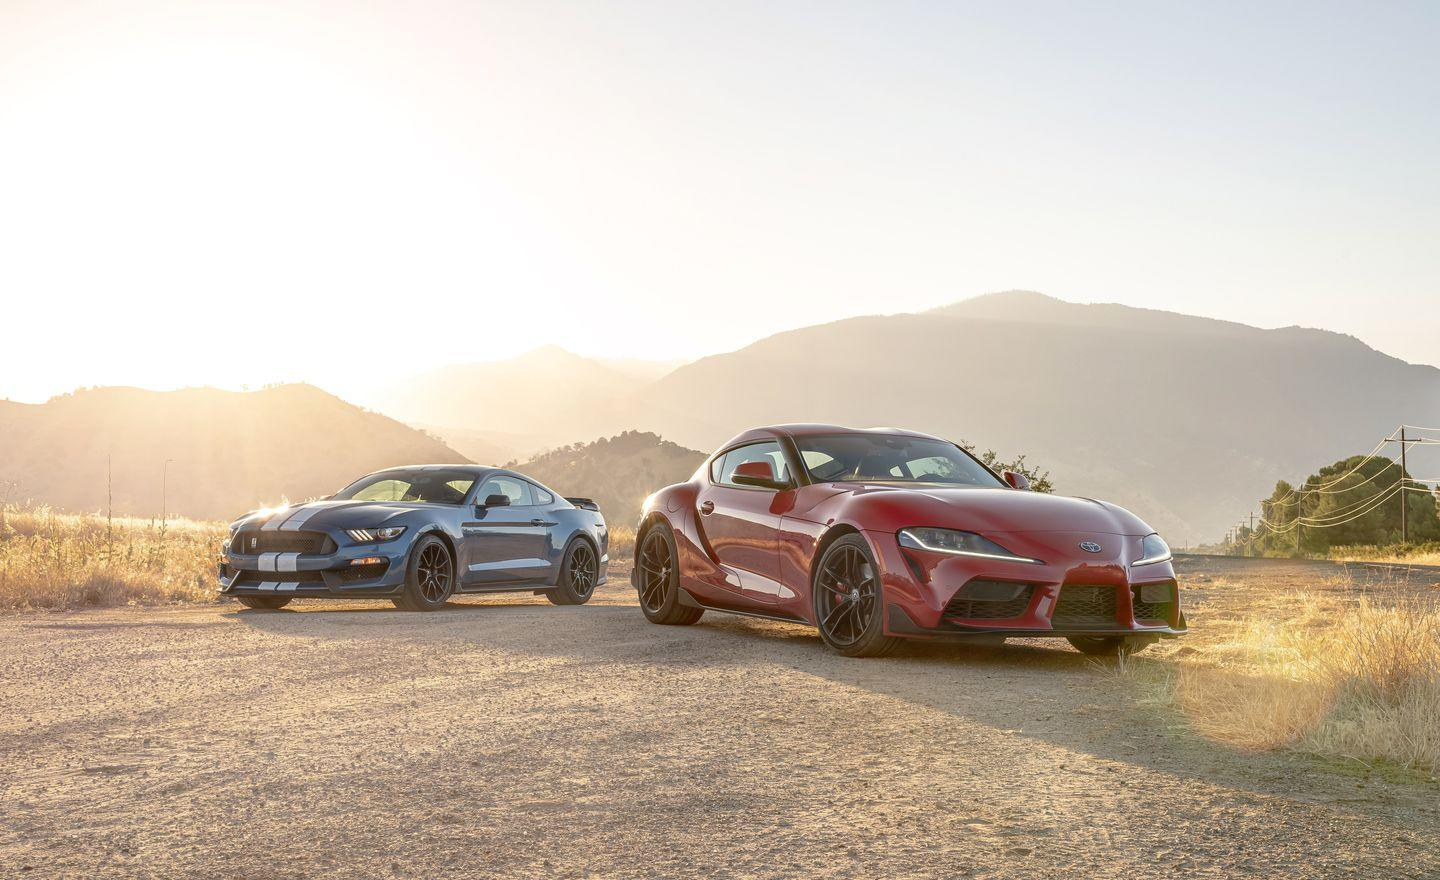 <p>The Ford Mustang Shelby GT-350 is all V-8 thunder and manual gear selection while the Supra boasts a sophisticated turbocharged inline-six and an automatic transmission with paddle shifters. </p>